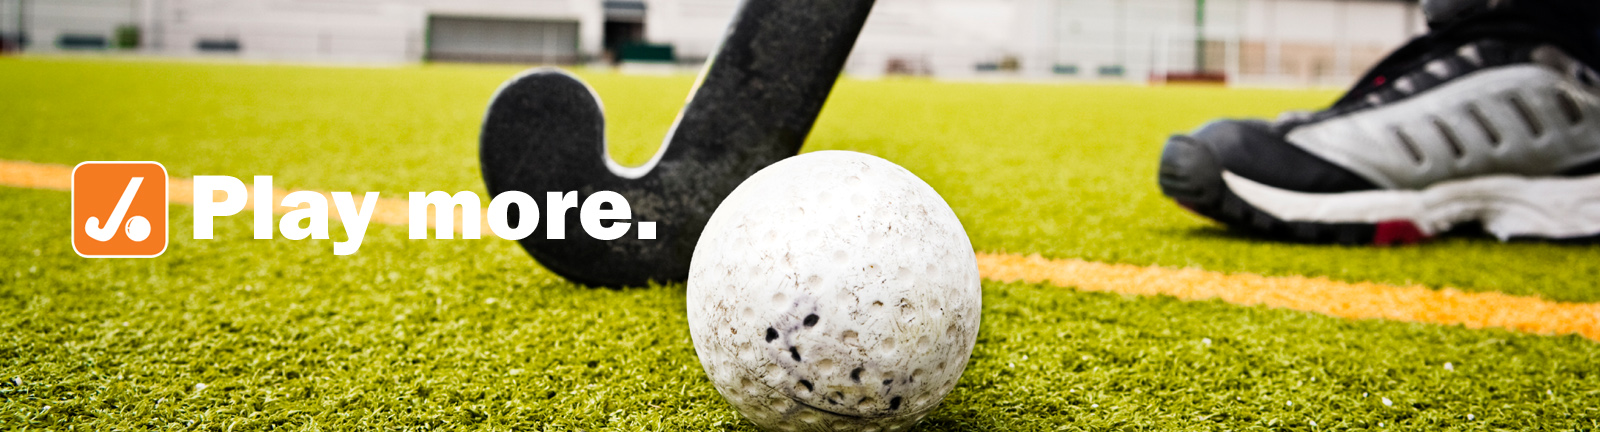 Play more with Xtreme Turf for field hockey